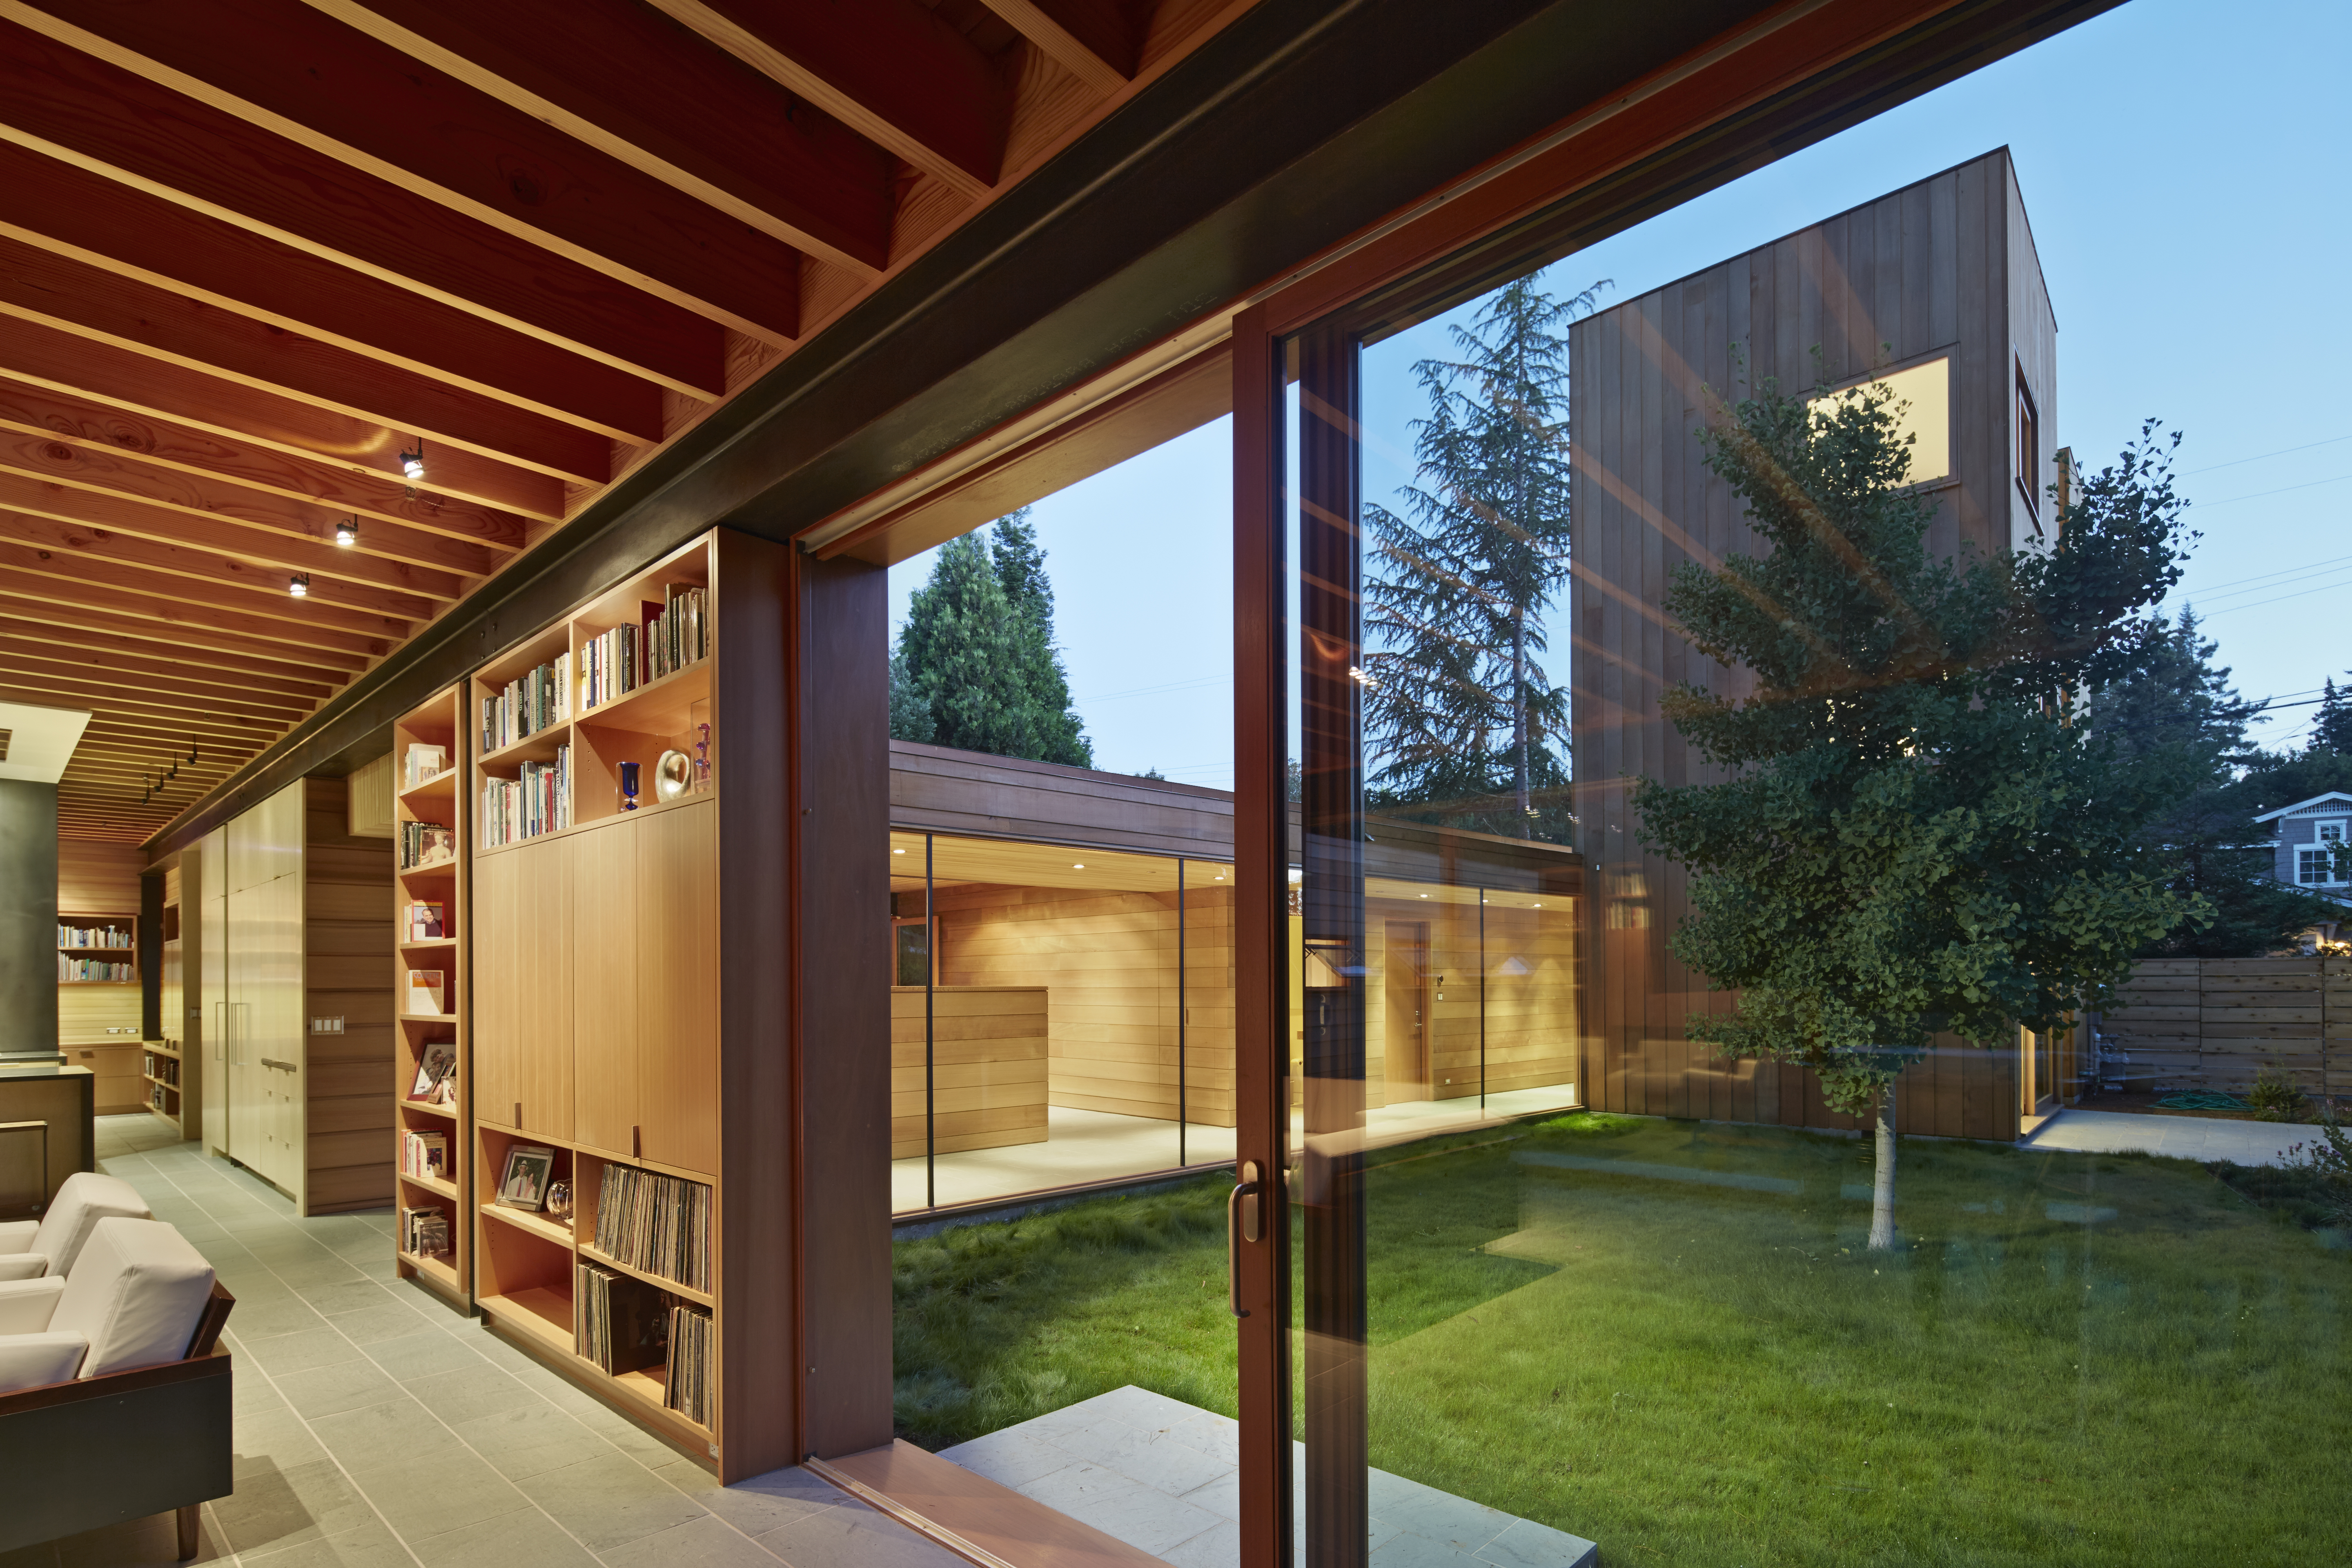 SAW | Low/Rise House, Menlo Park, California, 2013. Credit by Bruce Damonte